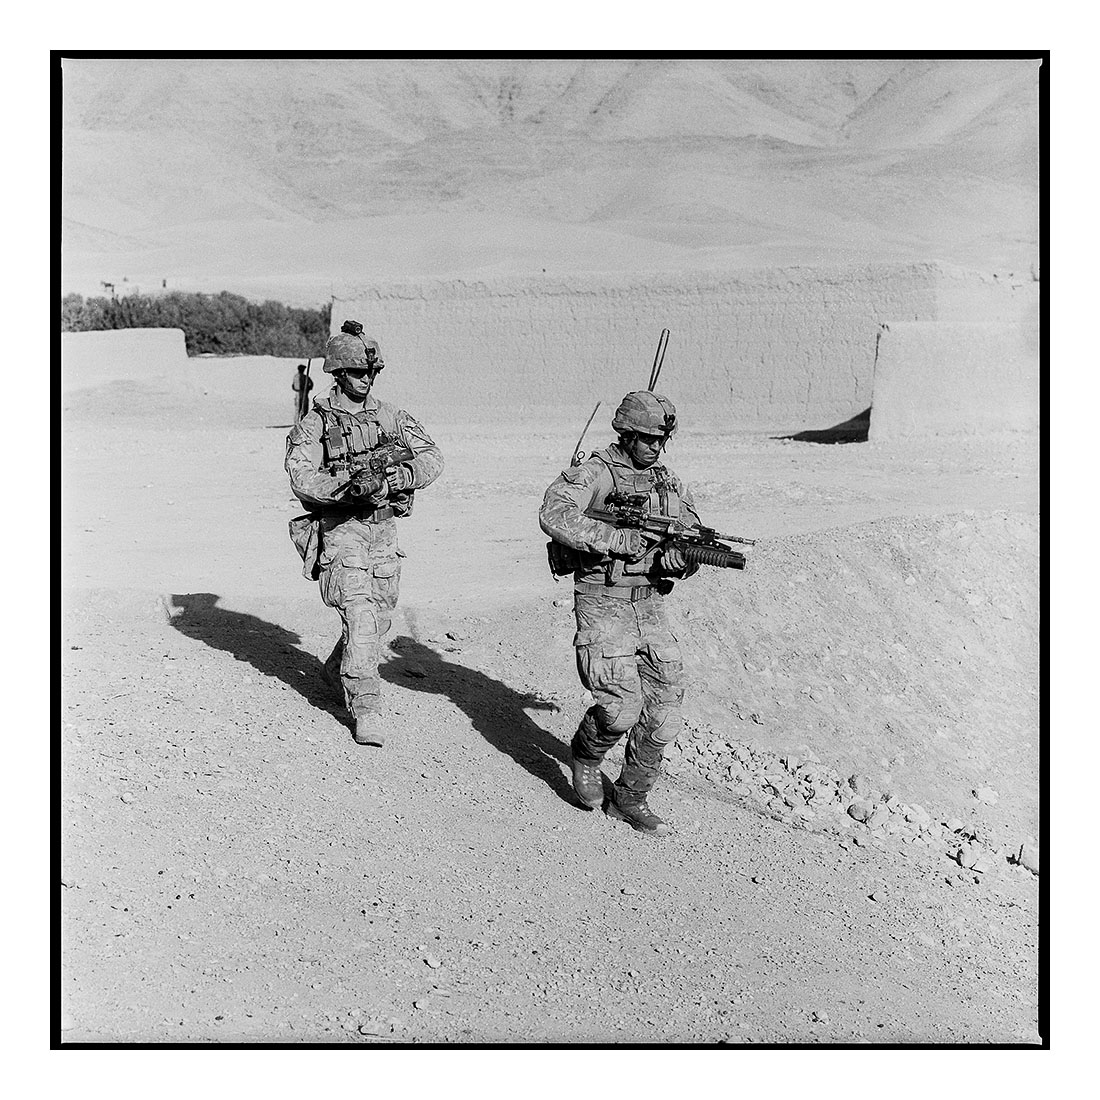 Two Soldiers   (2011) Archival pigment prints on Ilford paper 40cm x 40cm | Edition of 25 + 3 Artist Proofs 100cm x 100cm | Edition of 10 + 3 Artist Proofs